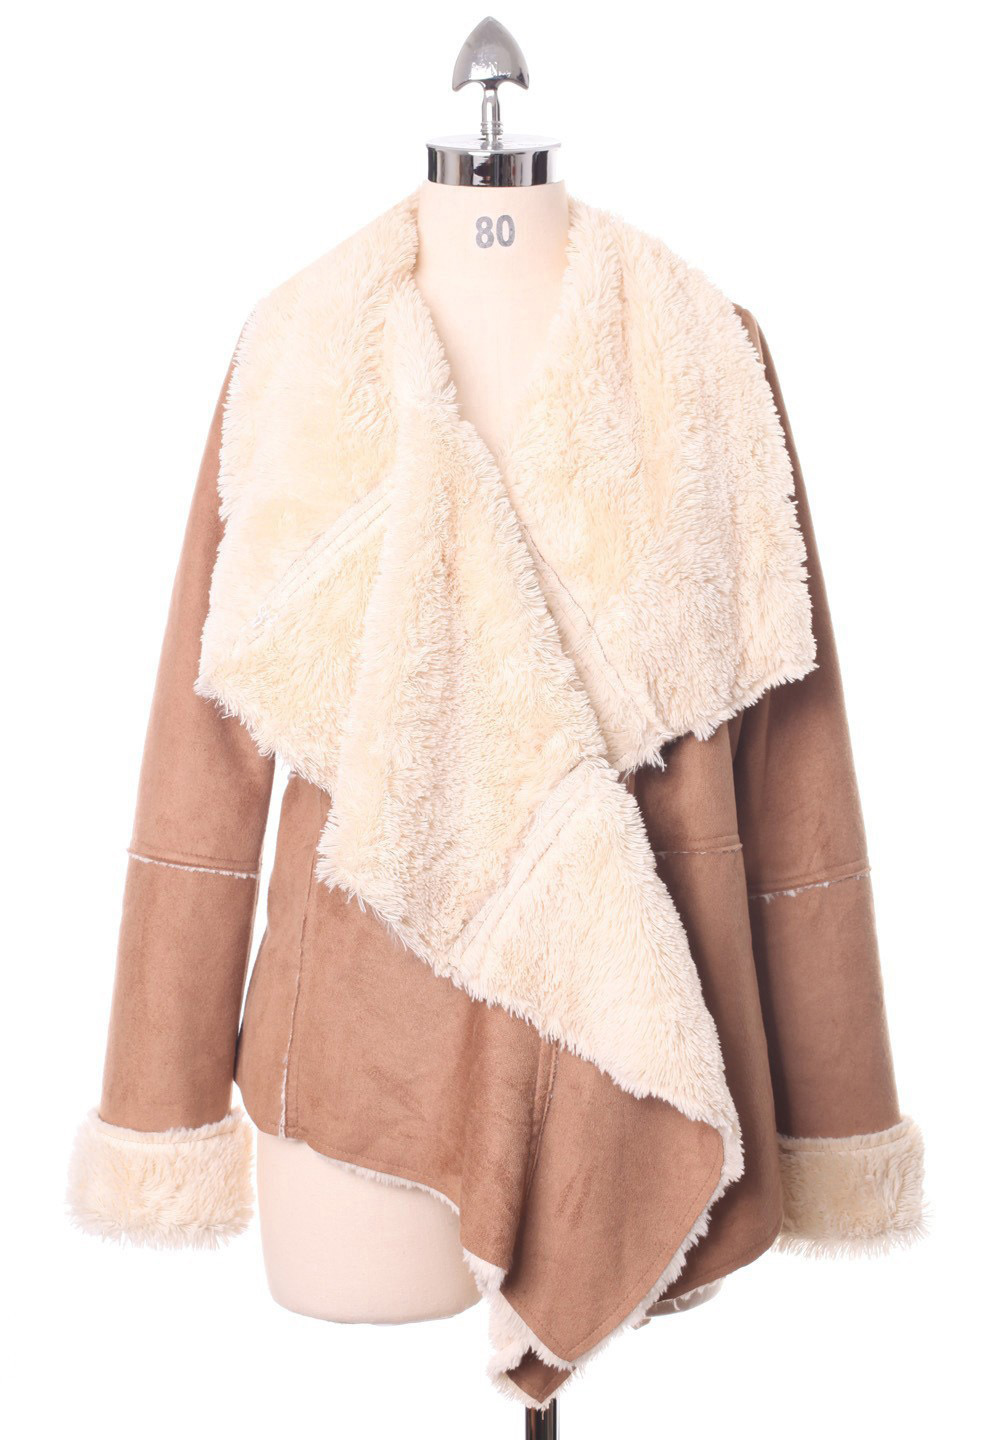 Chicwish Drape Jacket in Camel - Retro, Indie and Unique Fashion